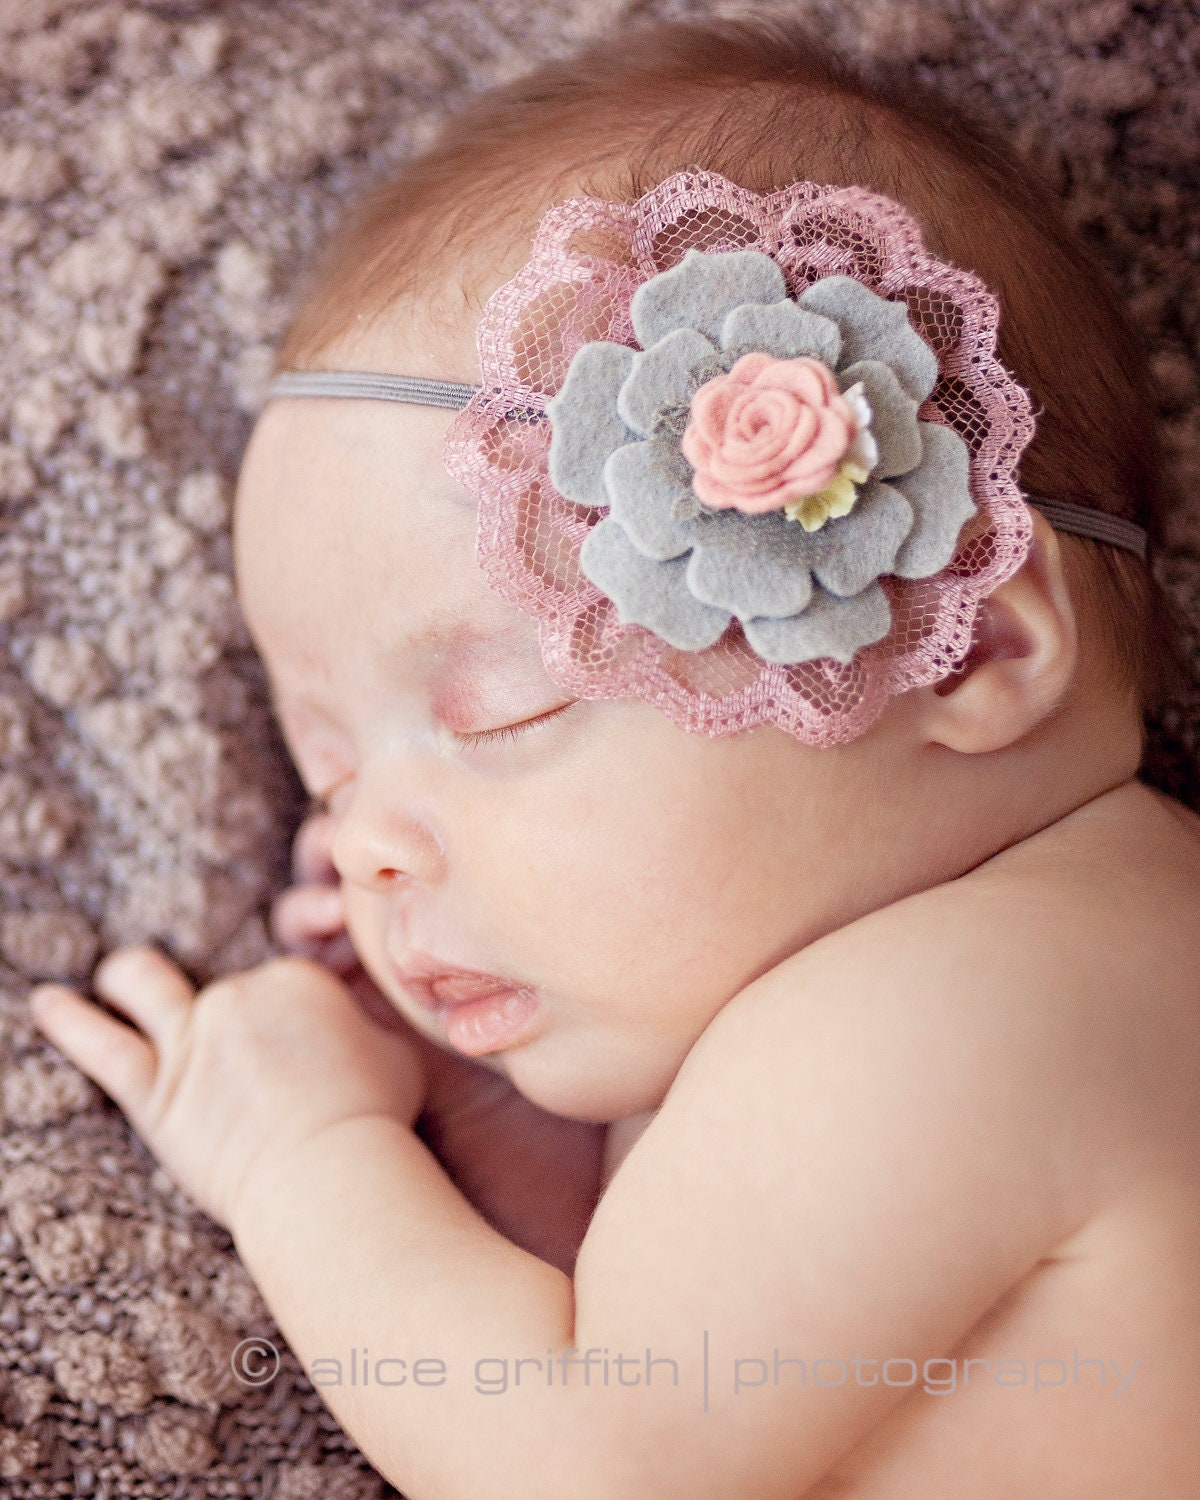 Girl's & Baby Headbands. Headbands are a fun addition to any girl's outfit. Add some flair, mix and match colors, and bring some extra cheer to your girl's wardrobe. Our selection ranges from basic headbands to specialty versions that feature gorgeous flowers, patterns, and embellishments. Take a look at our full collection and discover the.